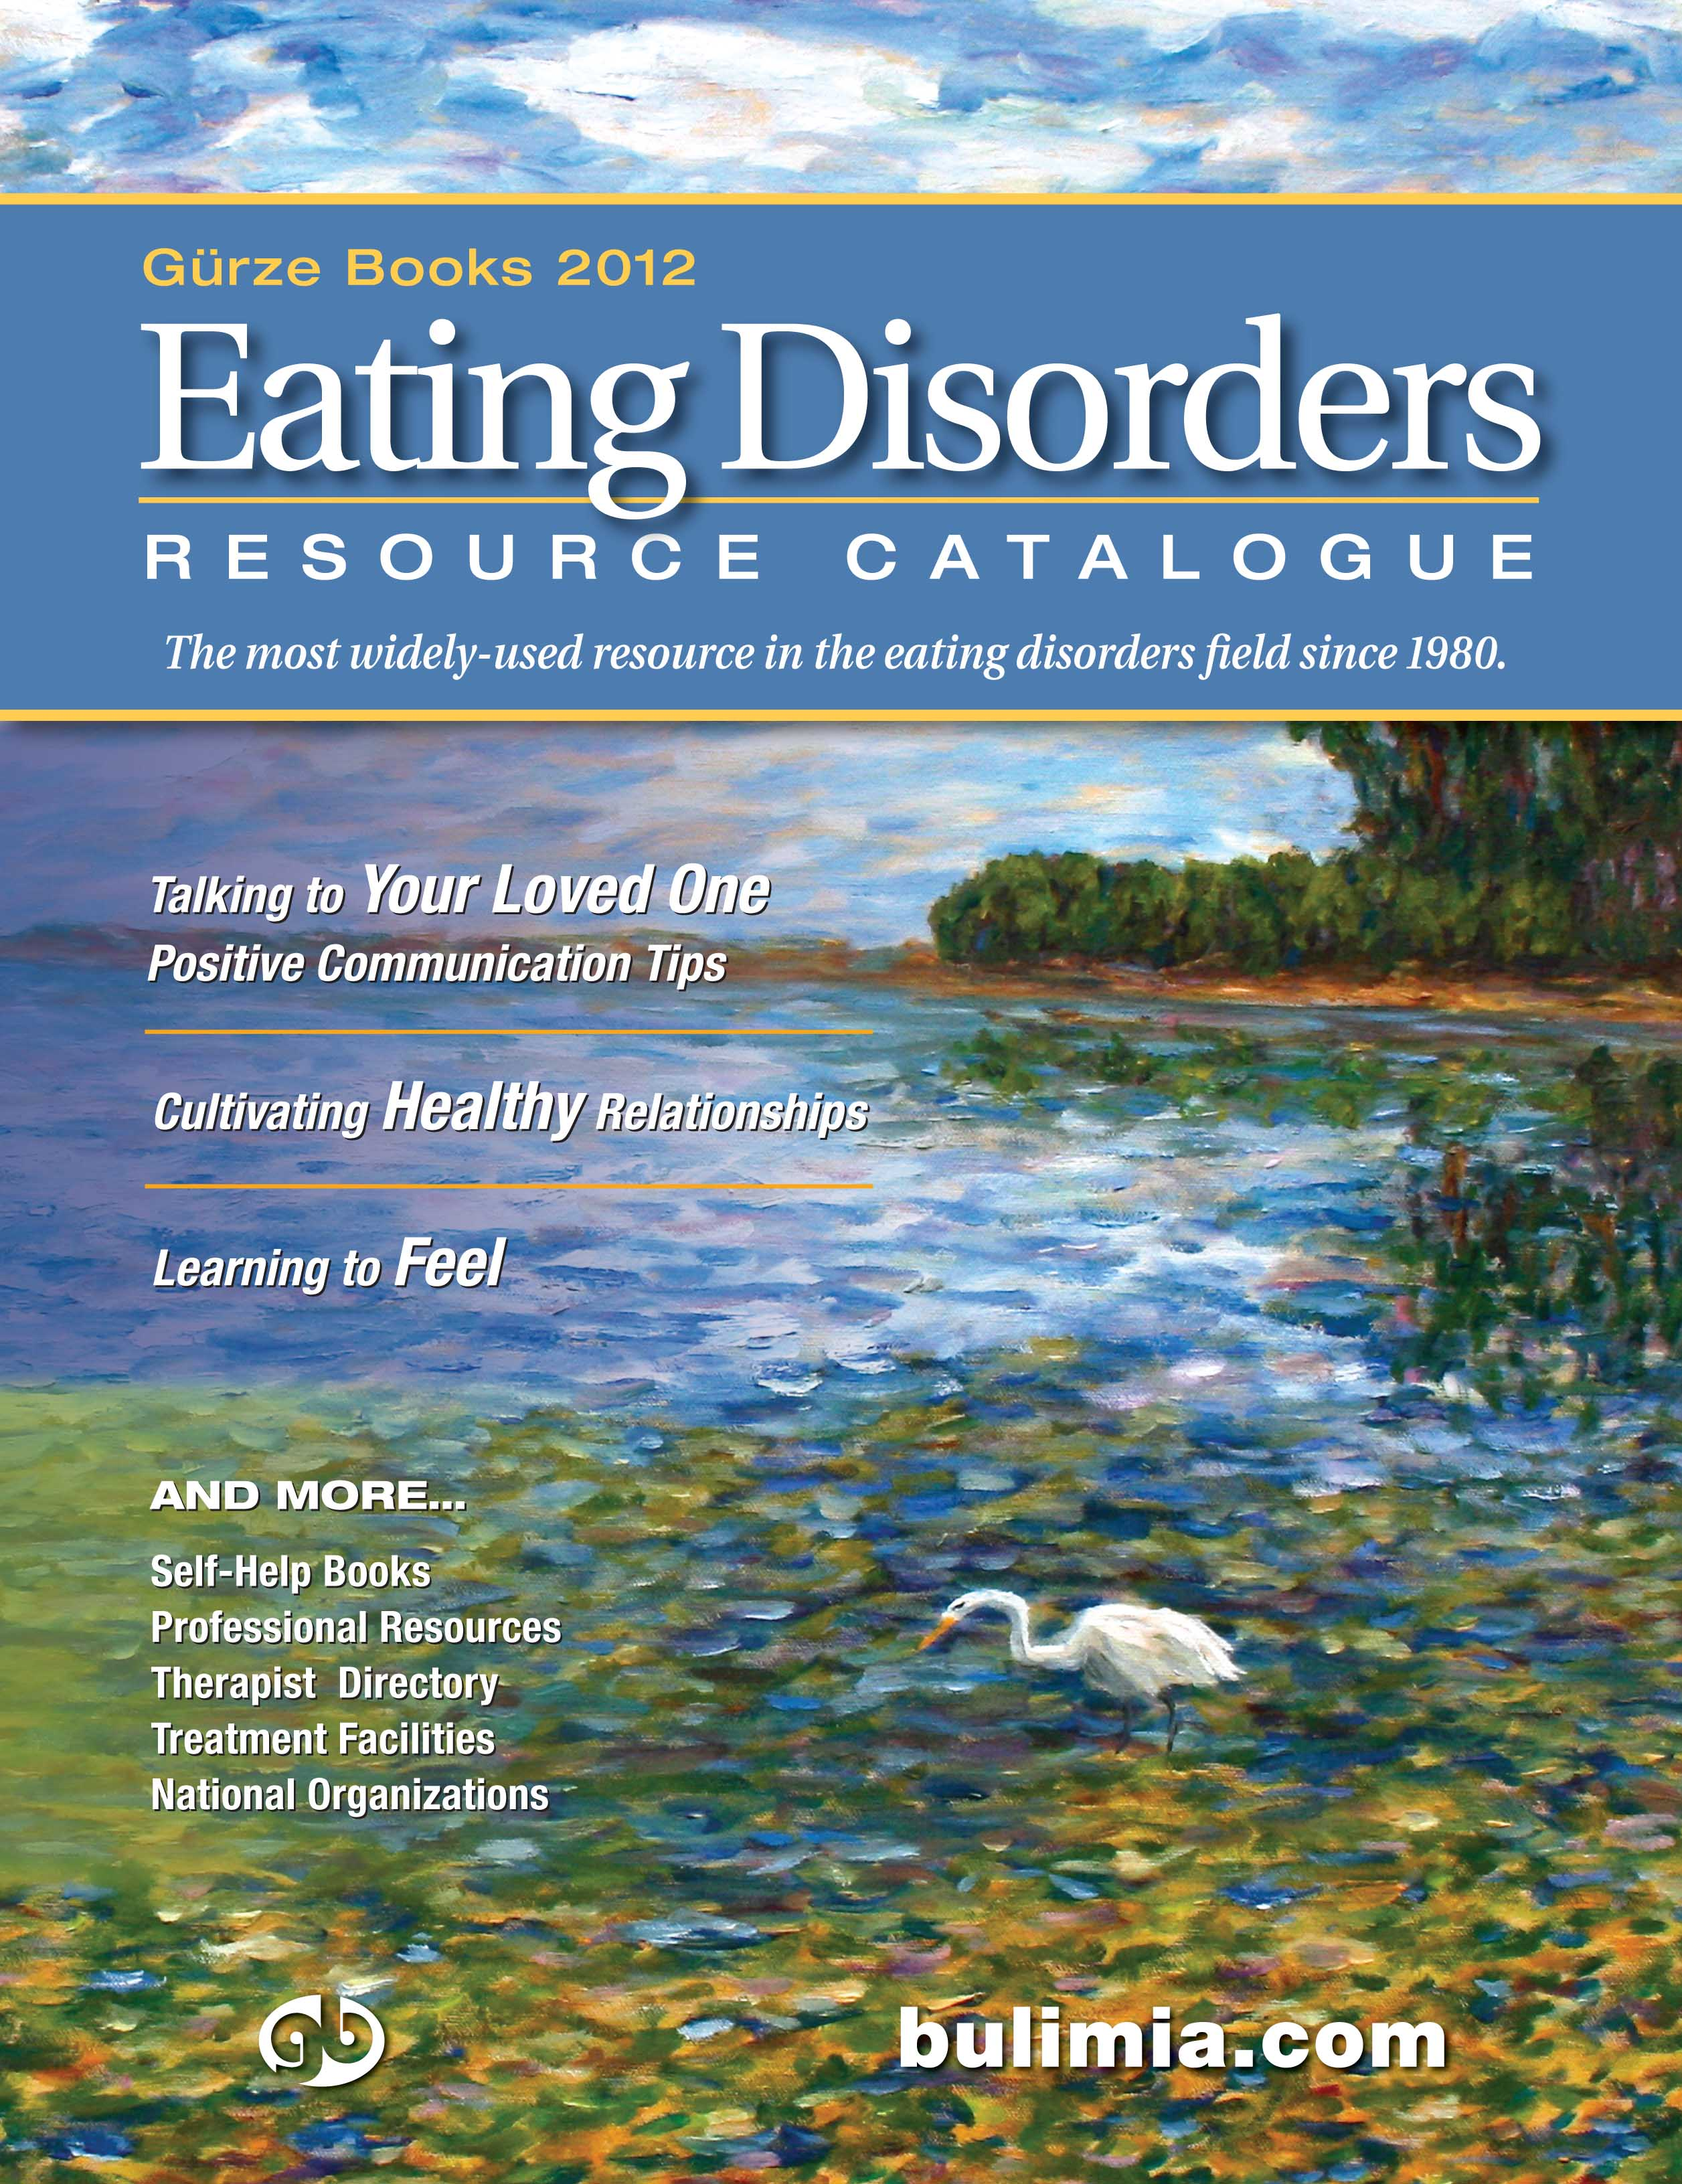 2012 Gurze Books Eating Disorders Resource Catalogue